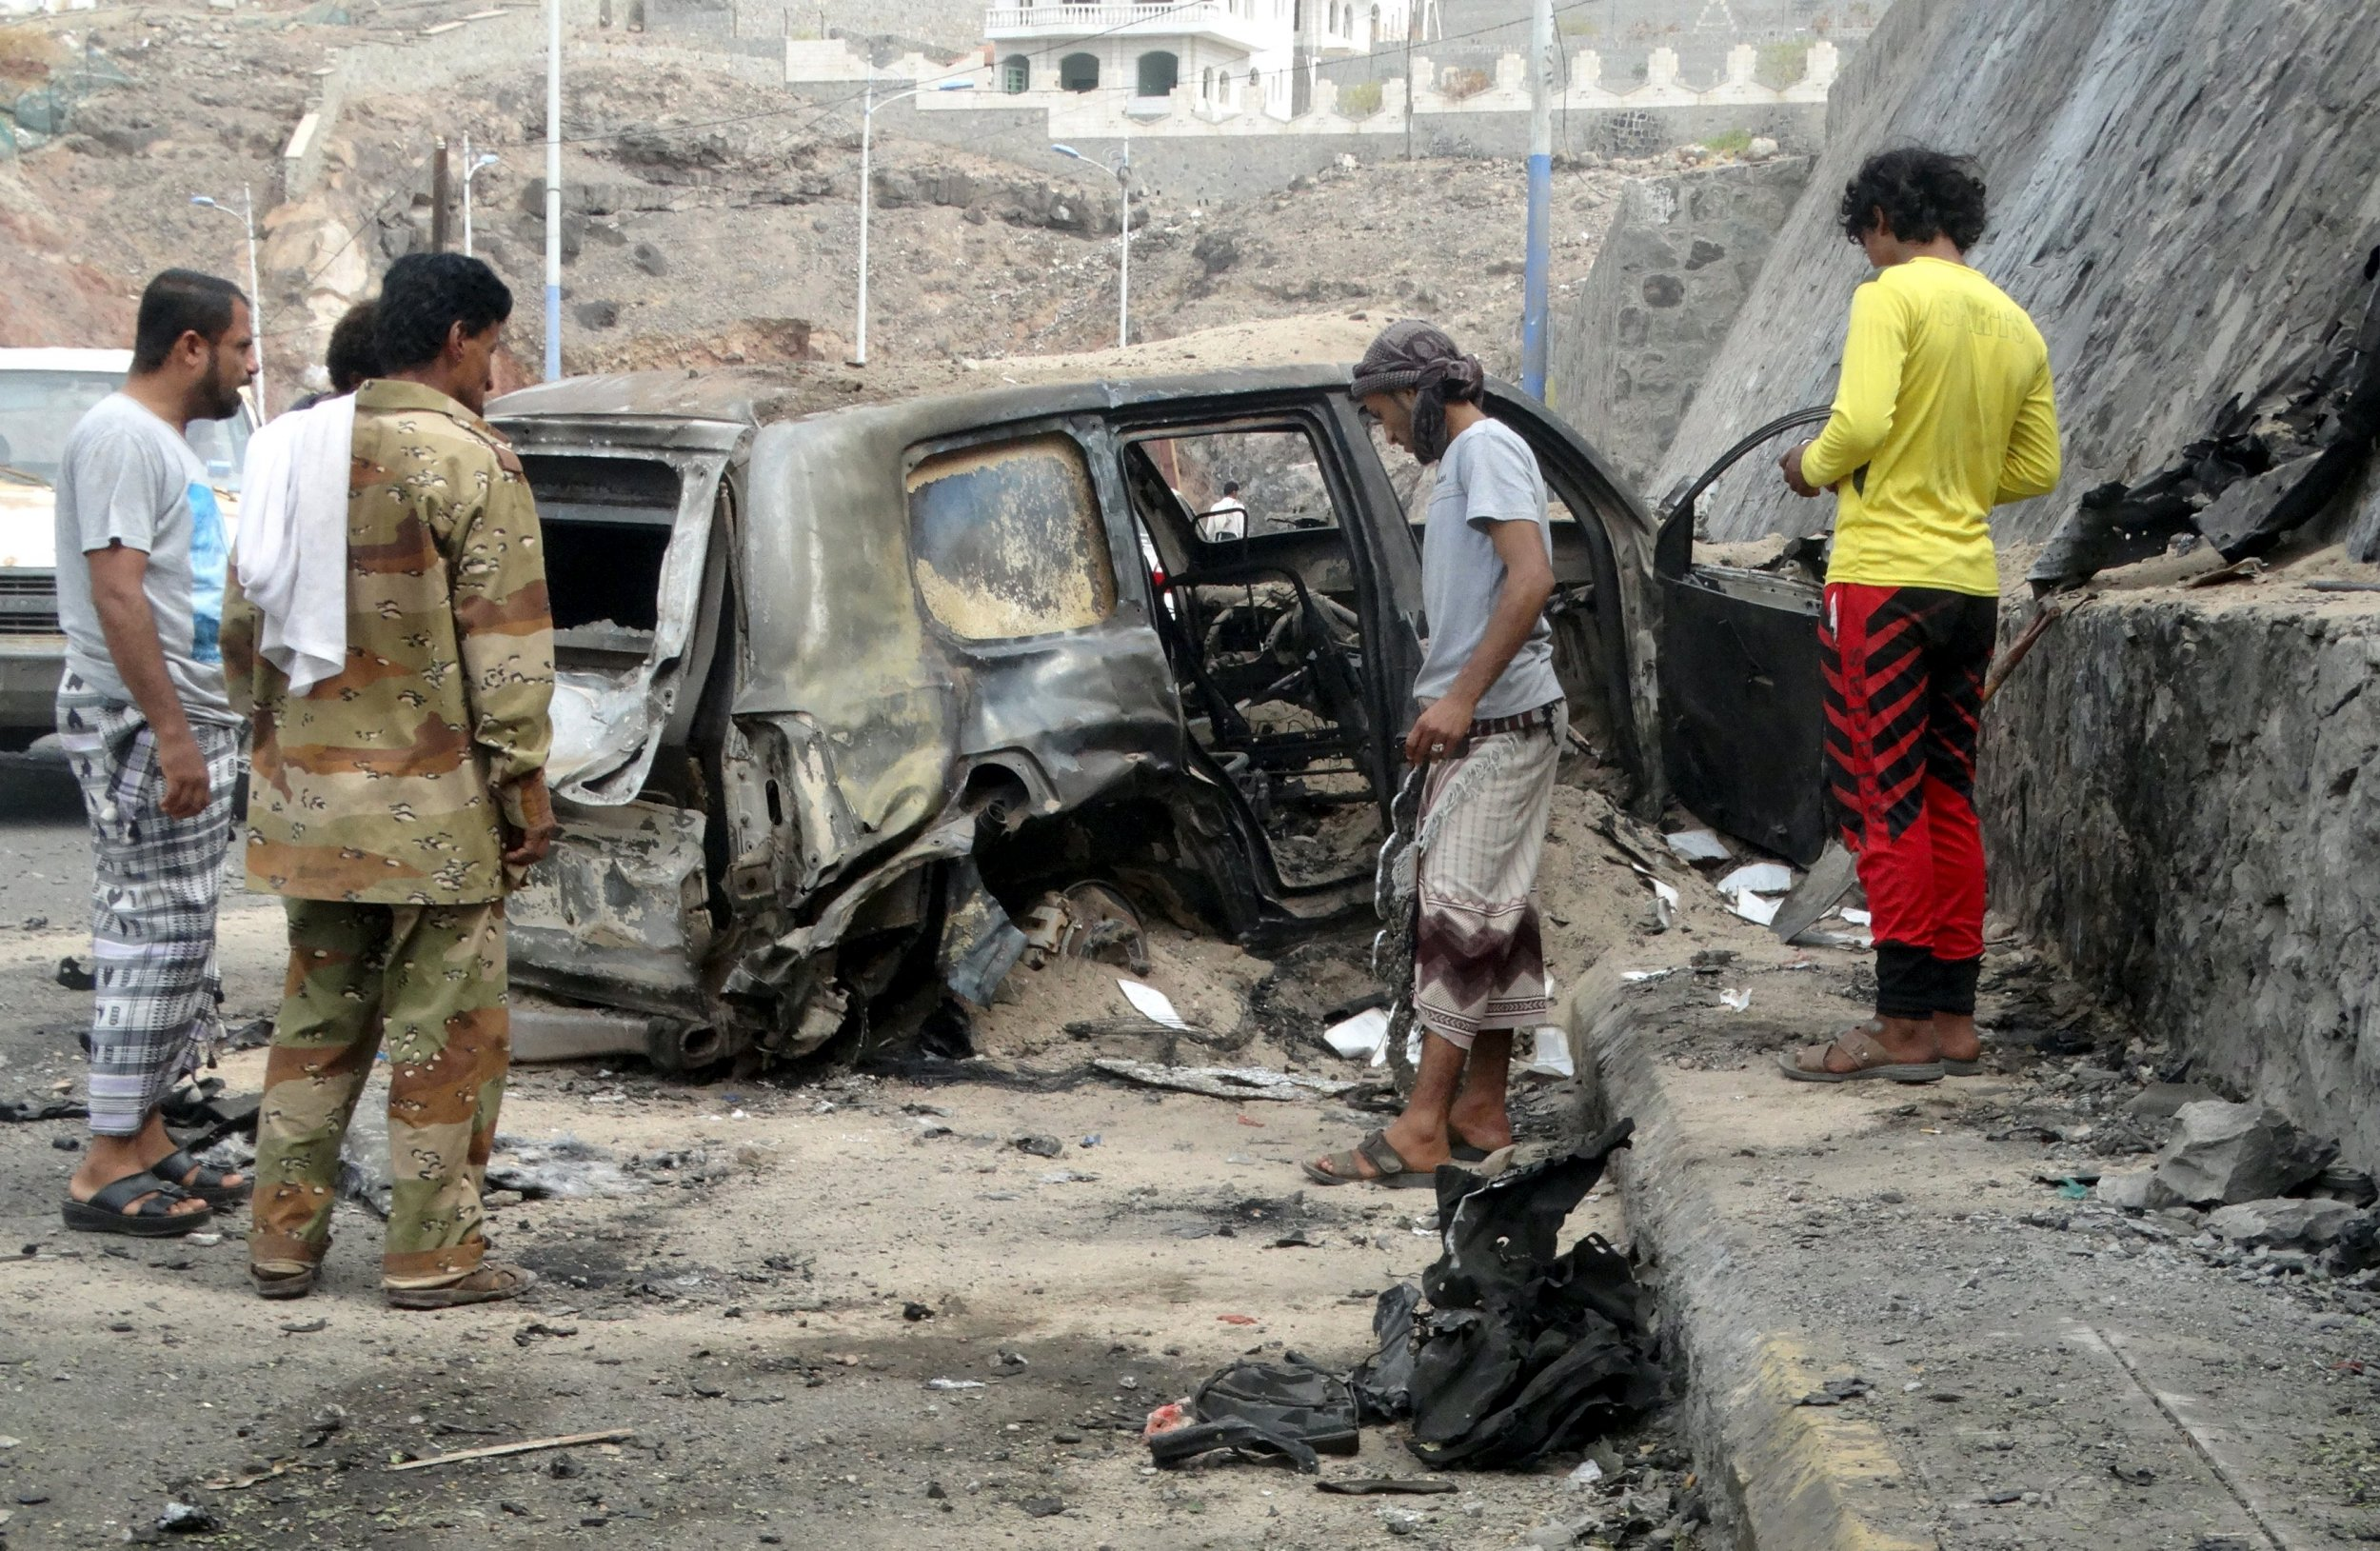 Yemen auto bomb attack kills at least two people in Aden: residents